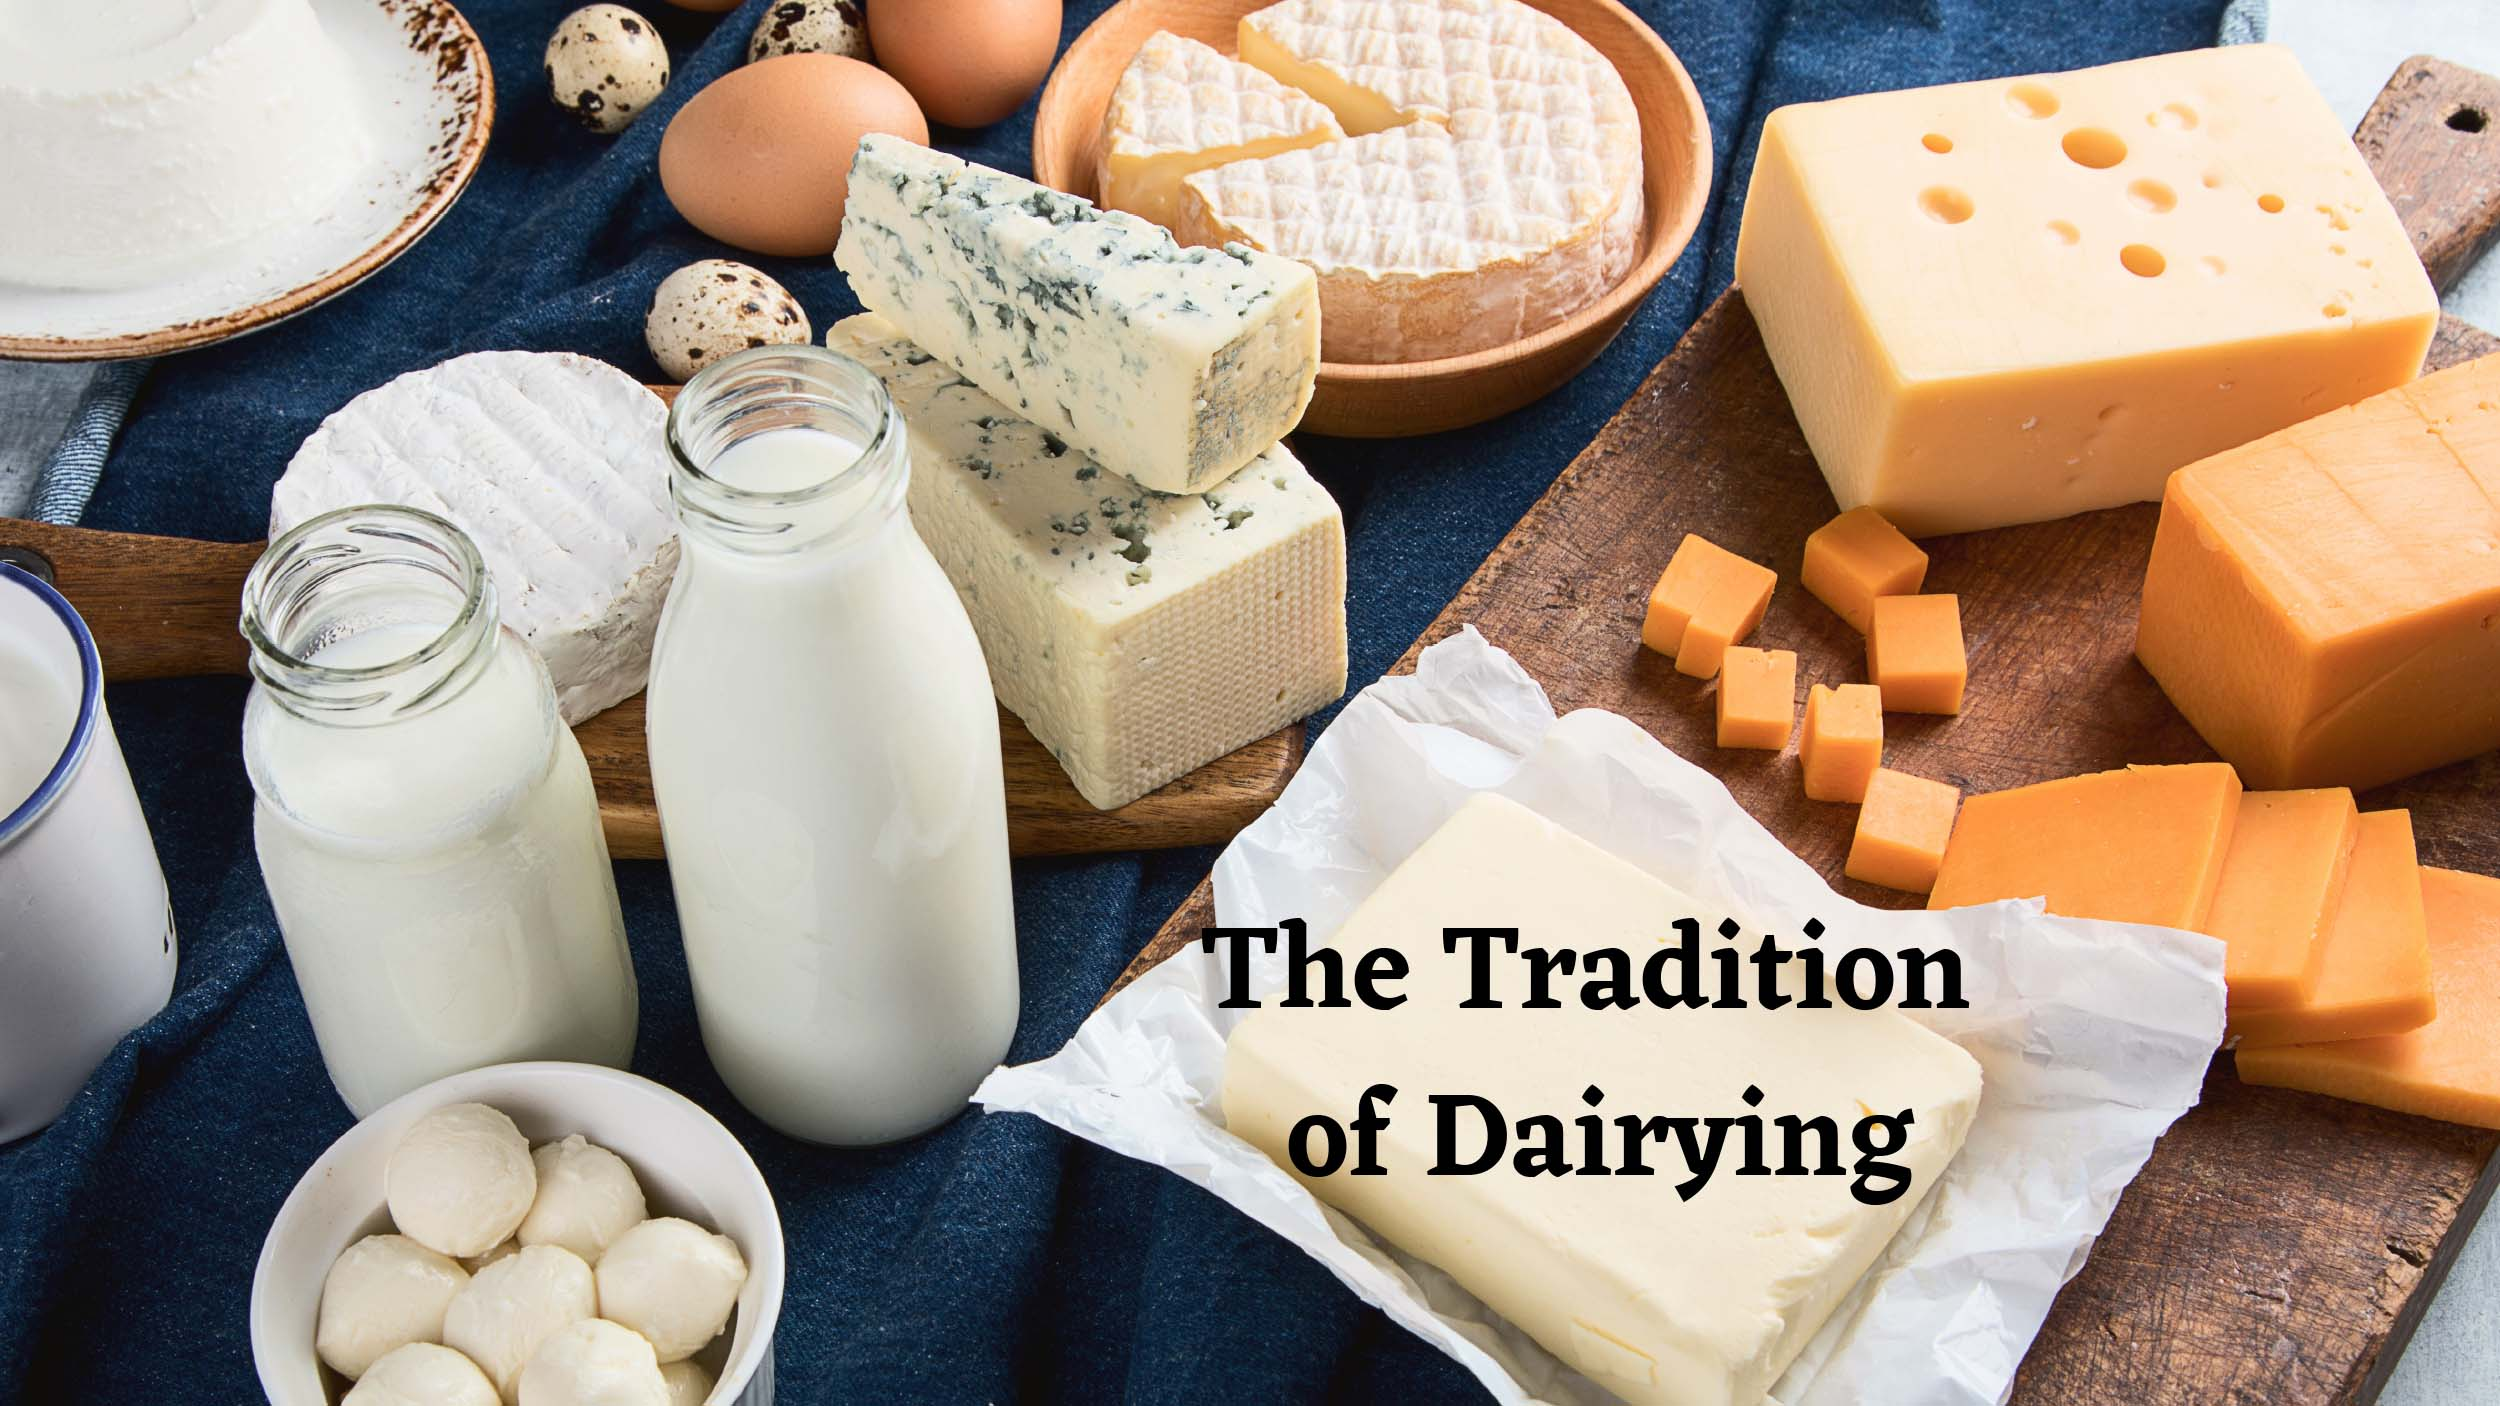 The Tradition of Dairying